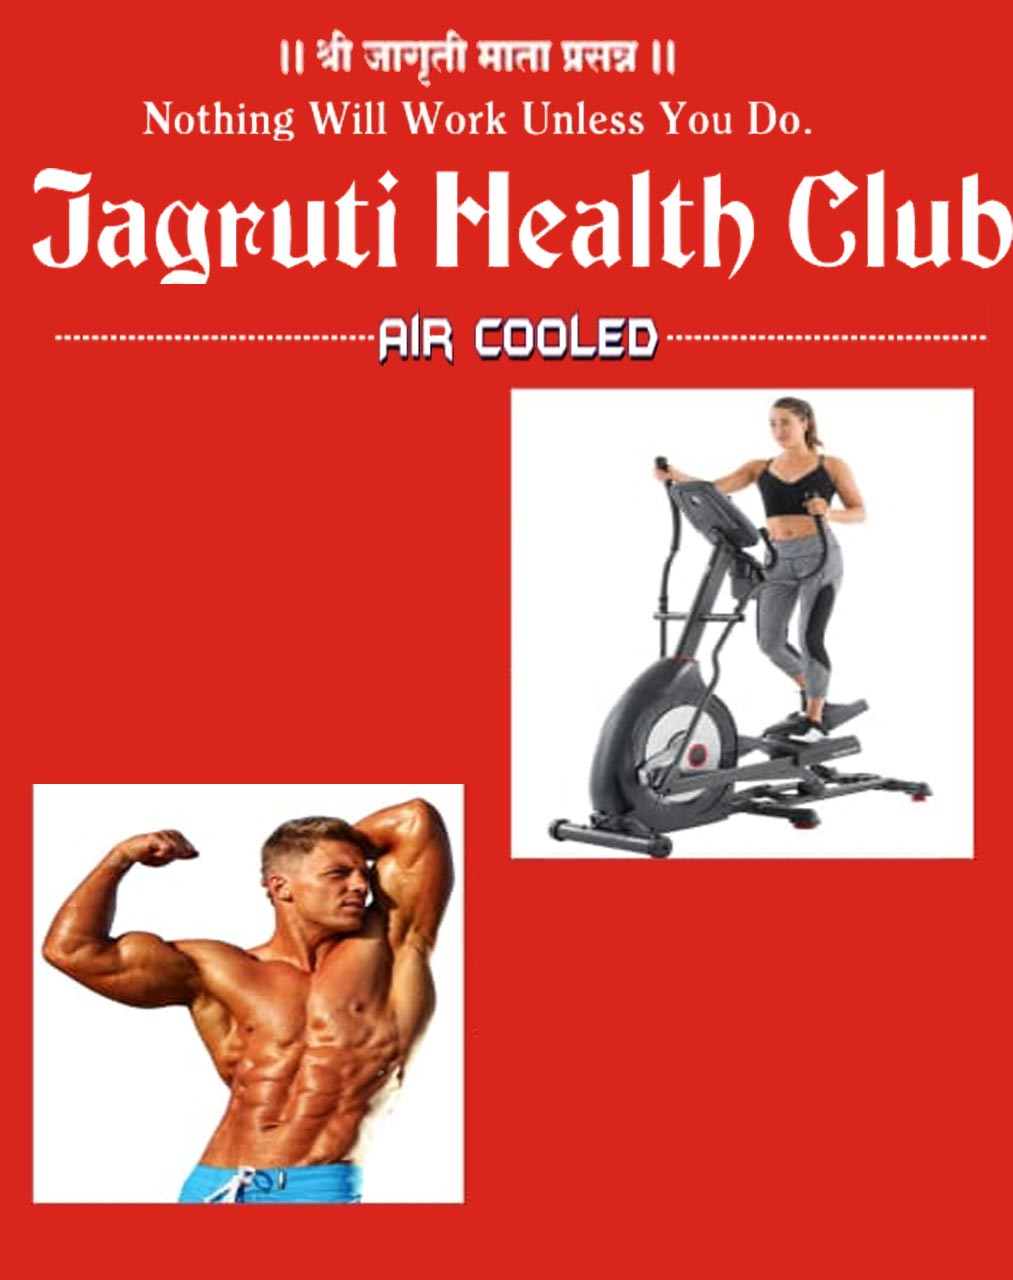 JAGRUTI HEALTH CLUB